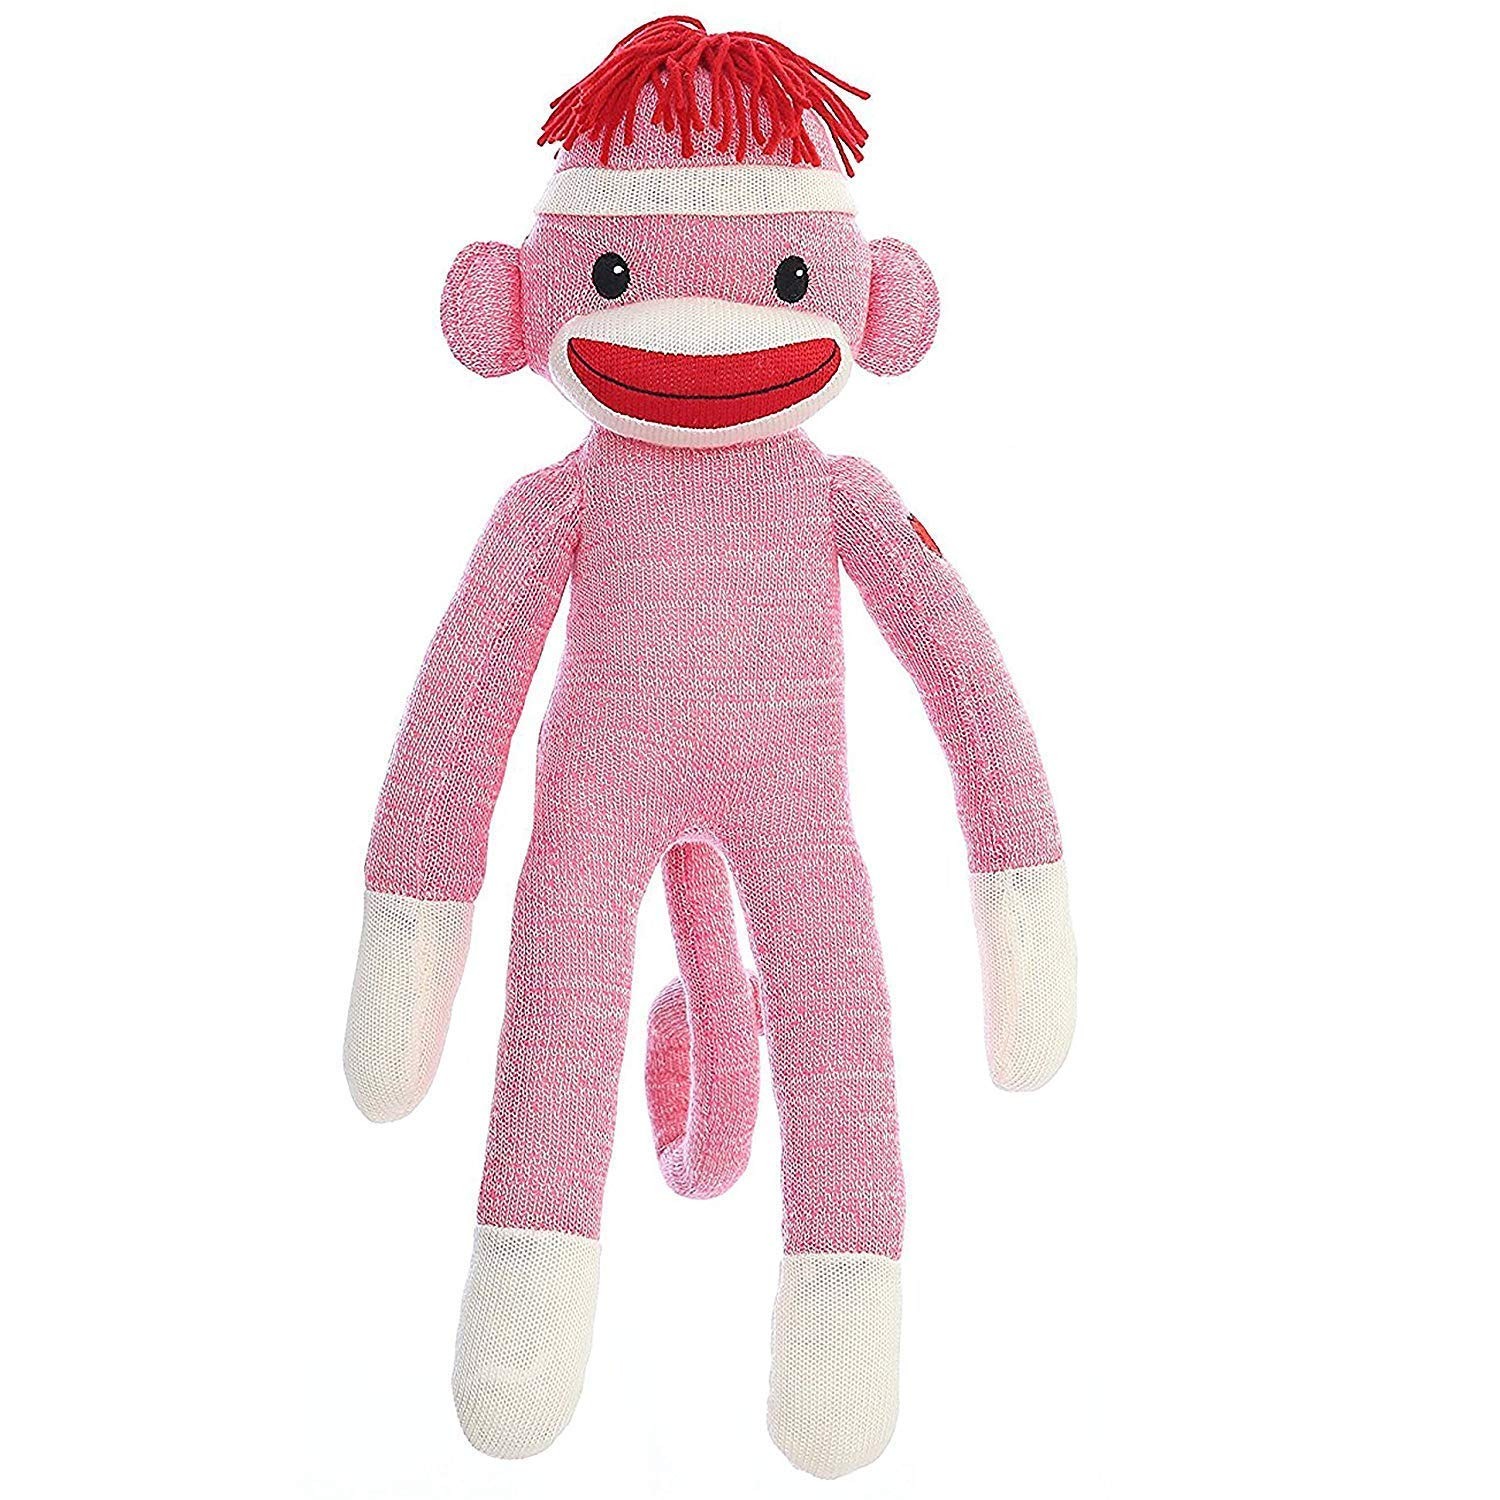 Get Quotations Giftsglorenow Original Plushed Stuffed Sock Monkey 20 Inches Tall Soft Like Wool Knitted Realistic Animal